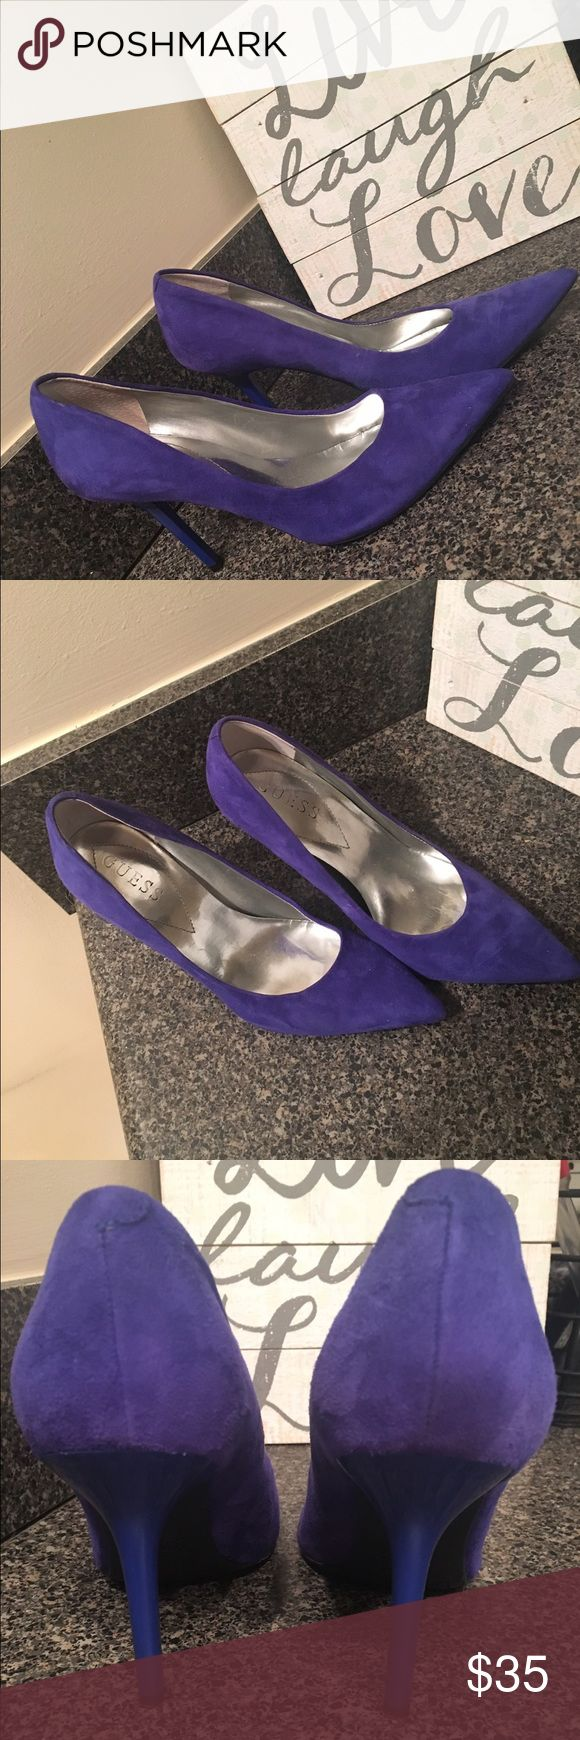 Guess Blue Suede Pumps Size 7.5 Guess Blue Suede Pumps! Size 7.5. Worn 3 times. Great condition! Pointed toe. Guess Shoes Heels